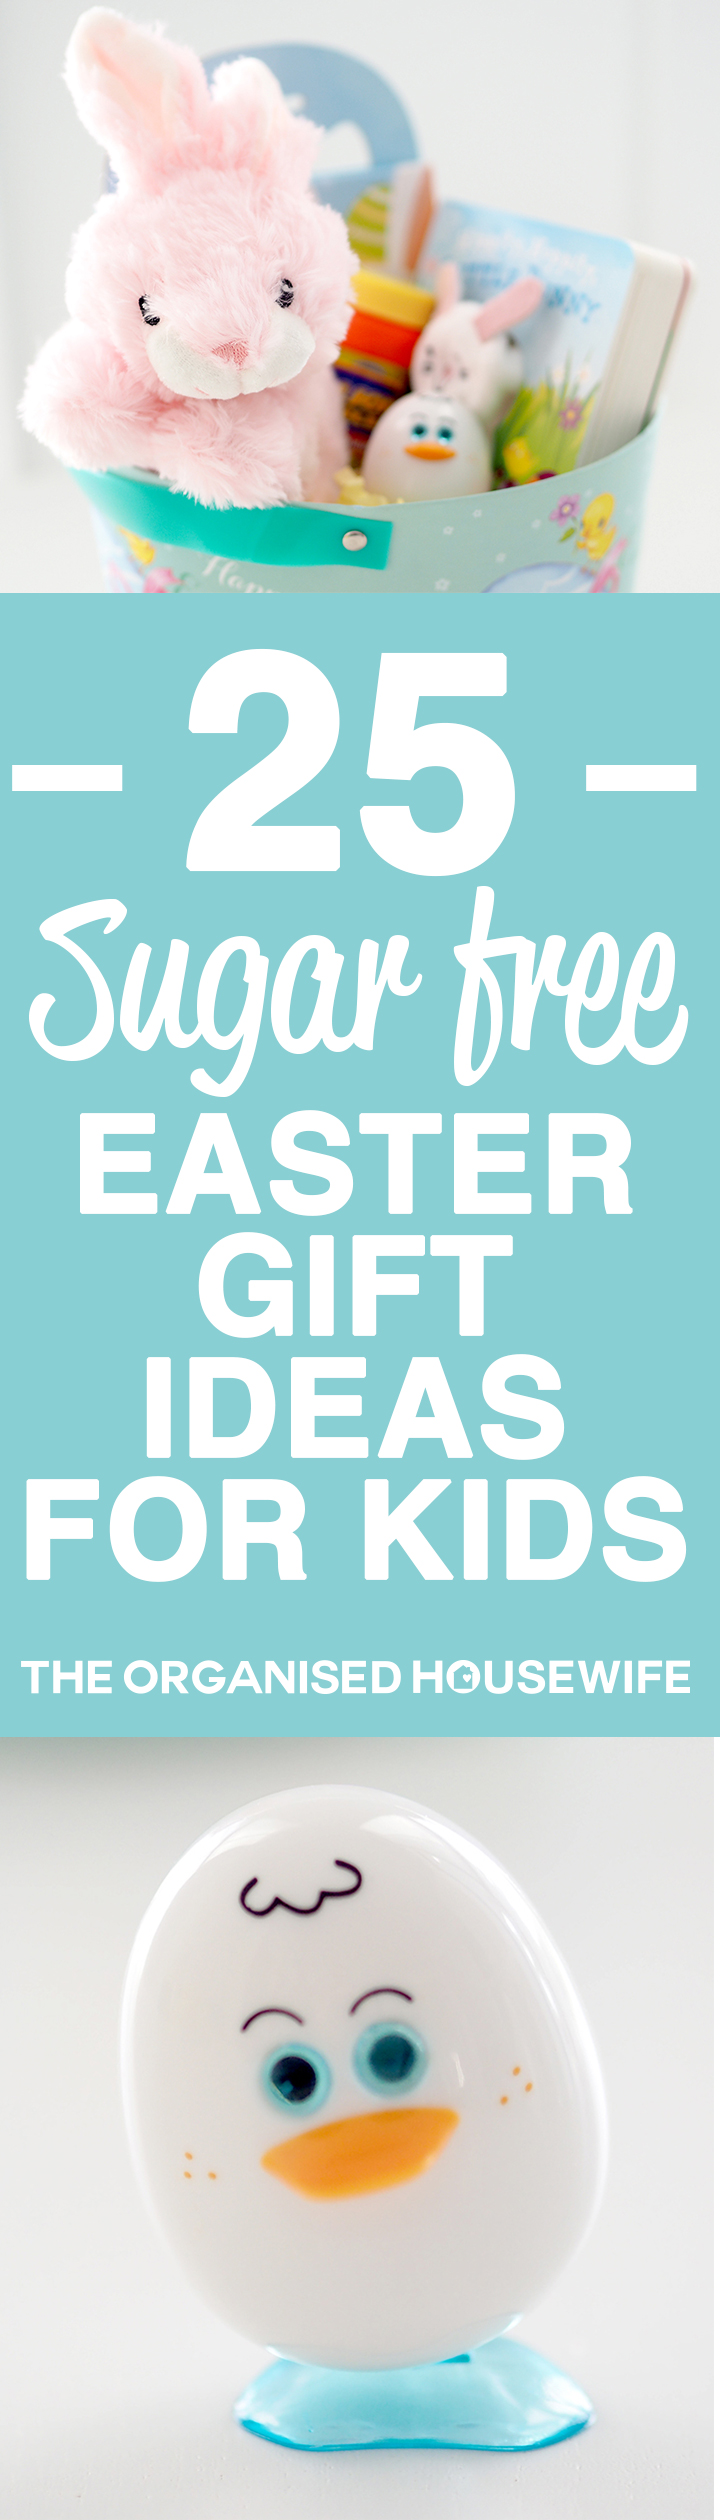 25 sugar free easter gift ideas for kids the organised housewife ive created a litte sugar free easter basket for my nieces to give negle Image collections